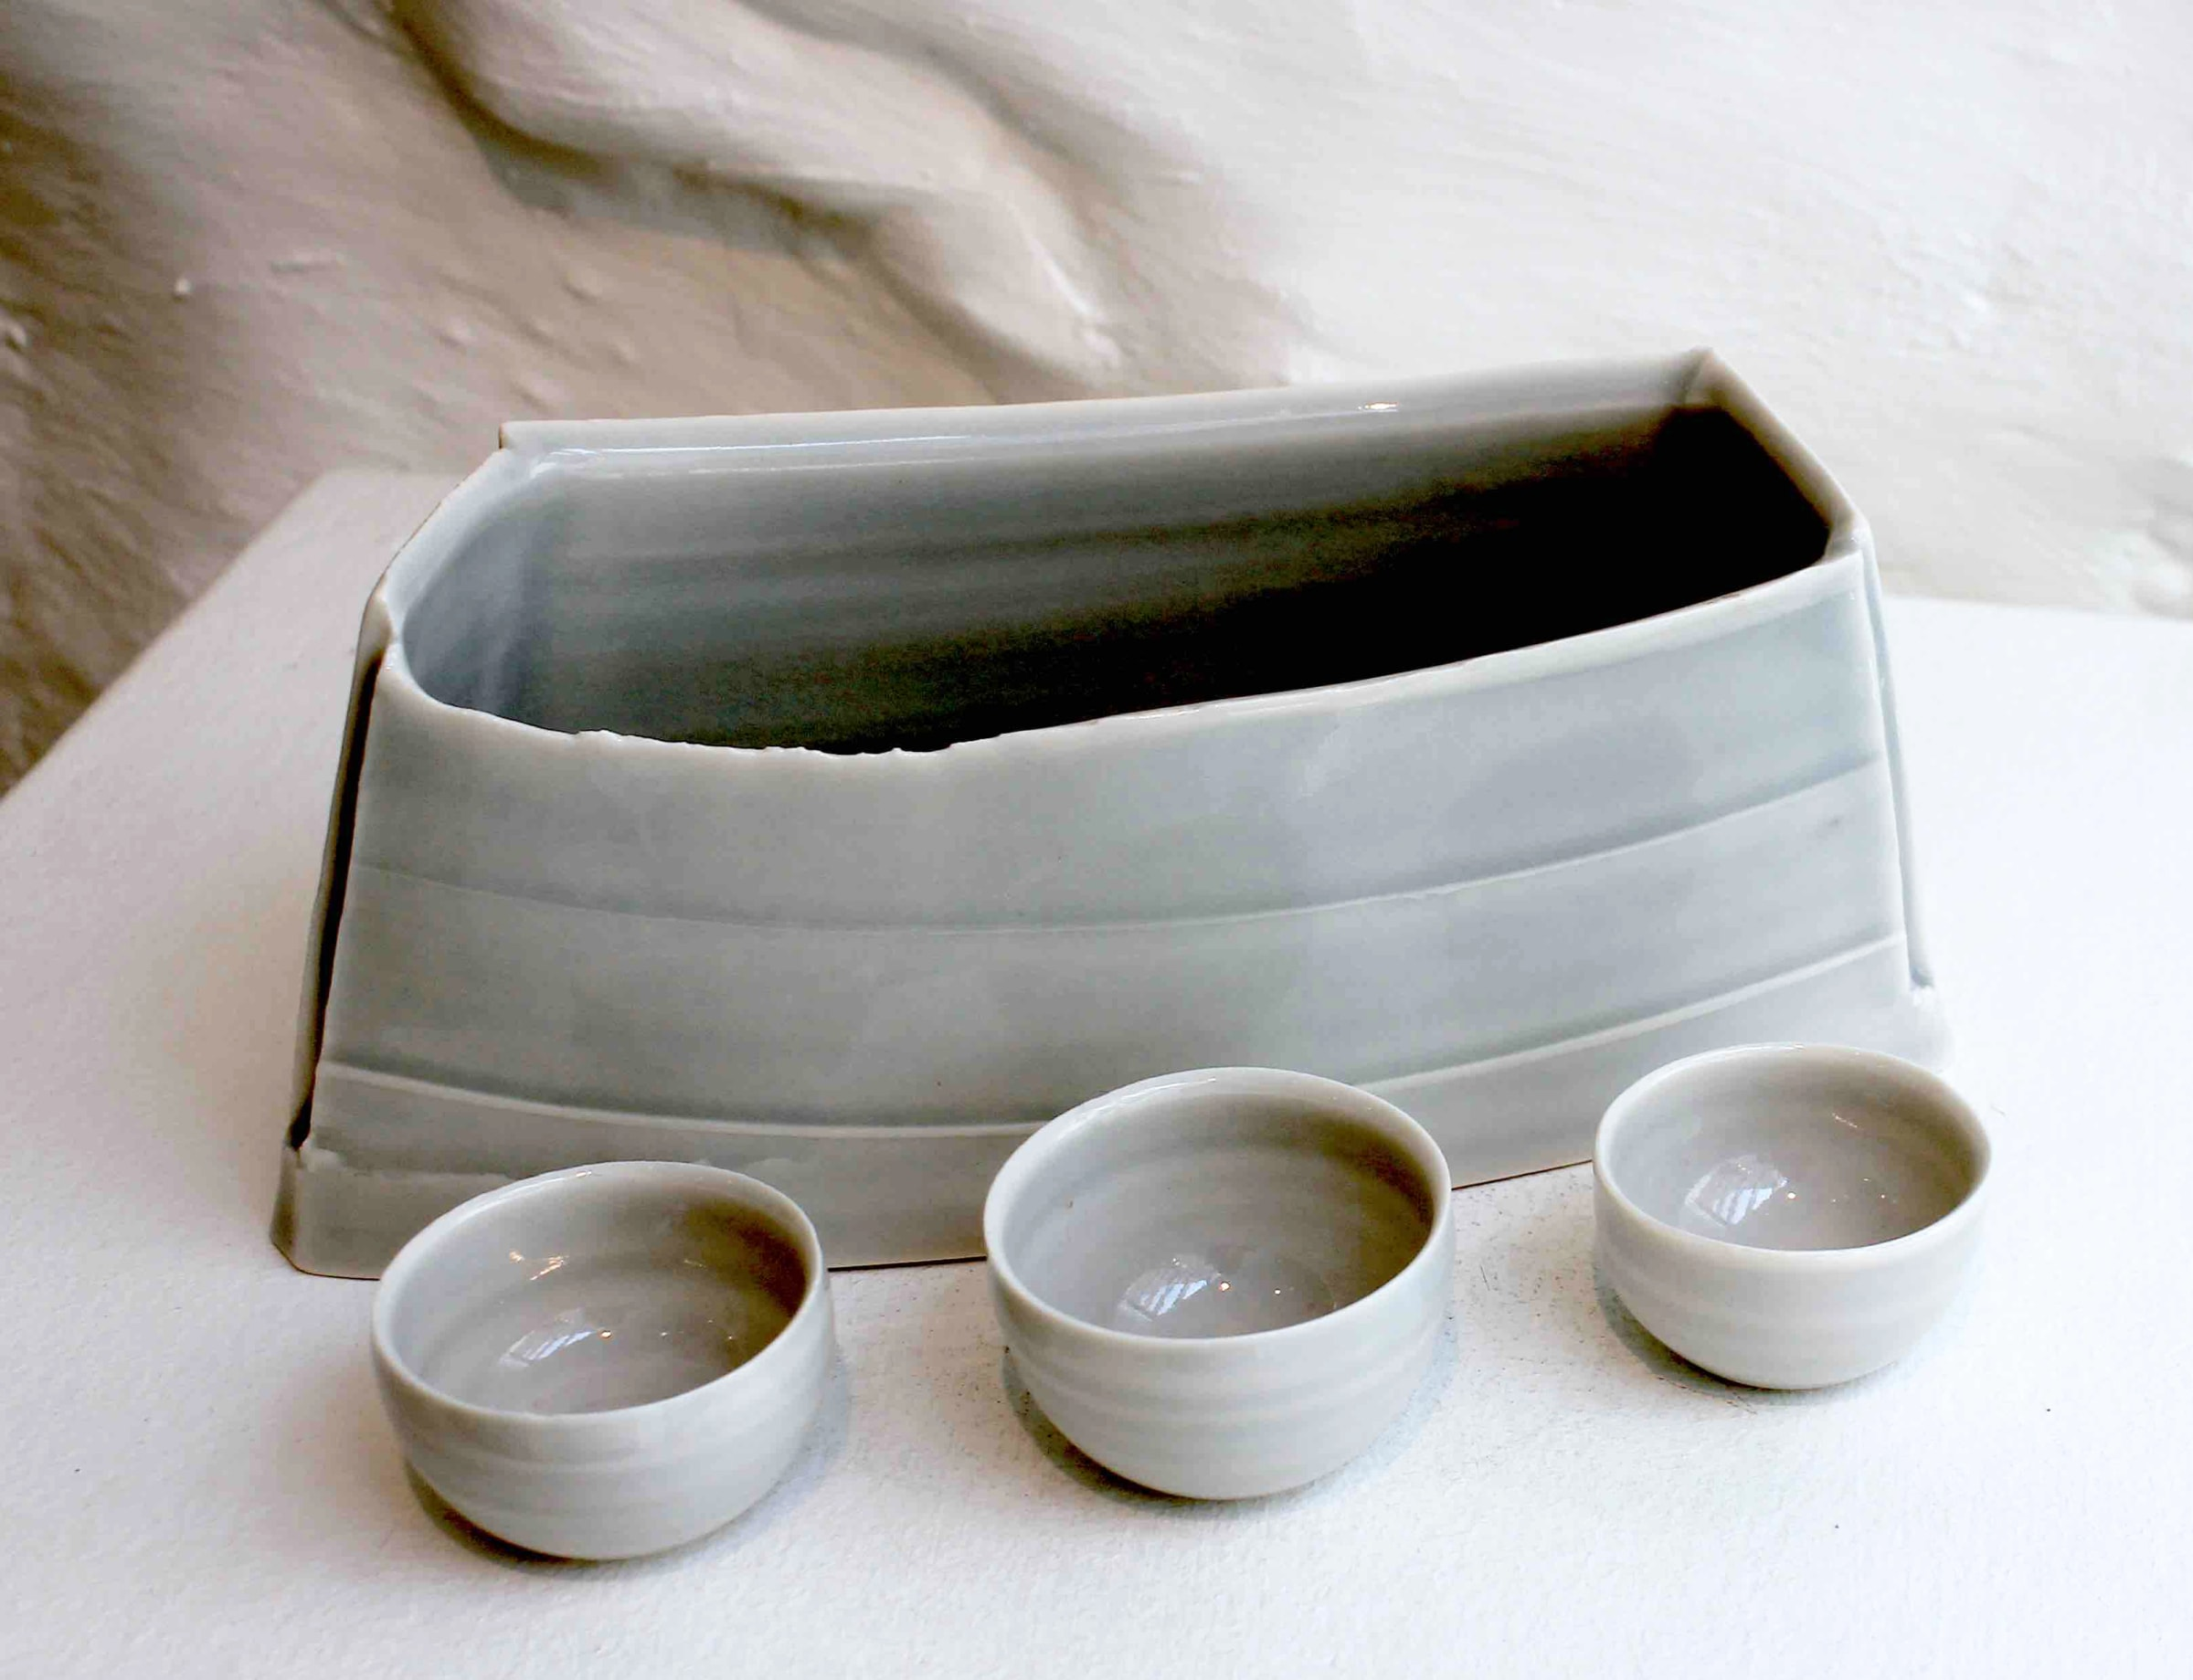 """<span class=""""link fancybox-details-link""""><a href=""""/artists/99-carina-ciscato/works/5767-carina-ciscato-pale-grey-blue-elongated-pot-with-three-bowls-2018/"""">View Detail Page</a></span><div class=""""artist""""><strong>Carina Ciscato</strong></div> b. 1970 <div class=""""title""""><em>Pale Grey/Blue Elongated Pot with Three Bowls</em>, 2018</div> <div class=""""signed_and_dated"""">porcelain</div> <div class=""""medium"""">porcelain</div> <div class=""""dimensions"""">17 x 23 cm<br /> 6 3/4 x 9 1/8 inches</div><div class=""""price"""">£280.00</div><div class=""""copyright_line"""">OwnArt: £28 x 10 Months, 0% APR</div>"""